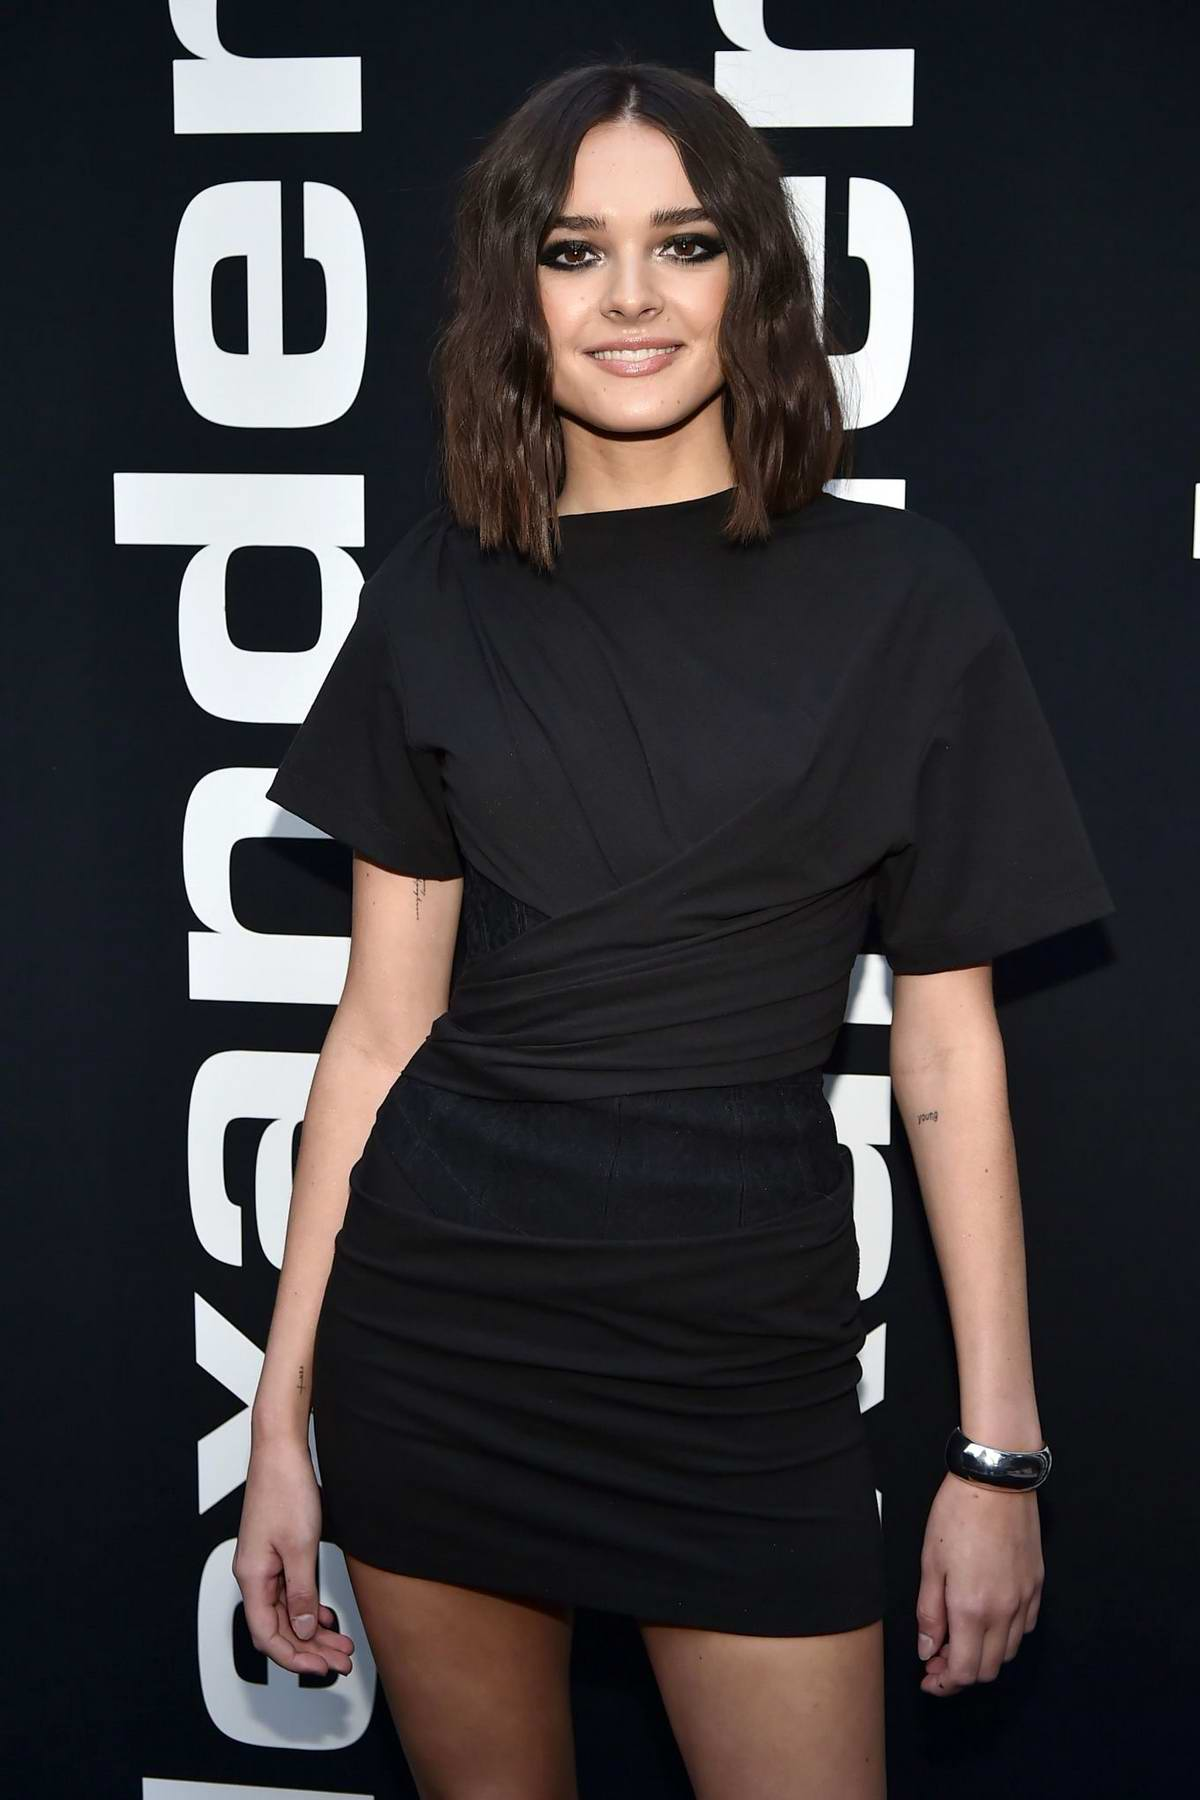 Charlotte Lawrence attends the Alexander Wang Collection 1 Fashion Show at Rockefeller Center in New York City